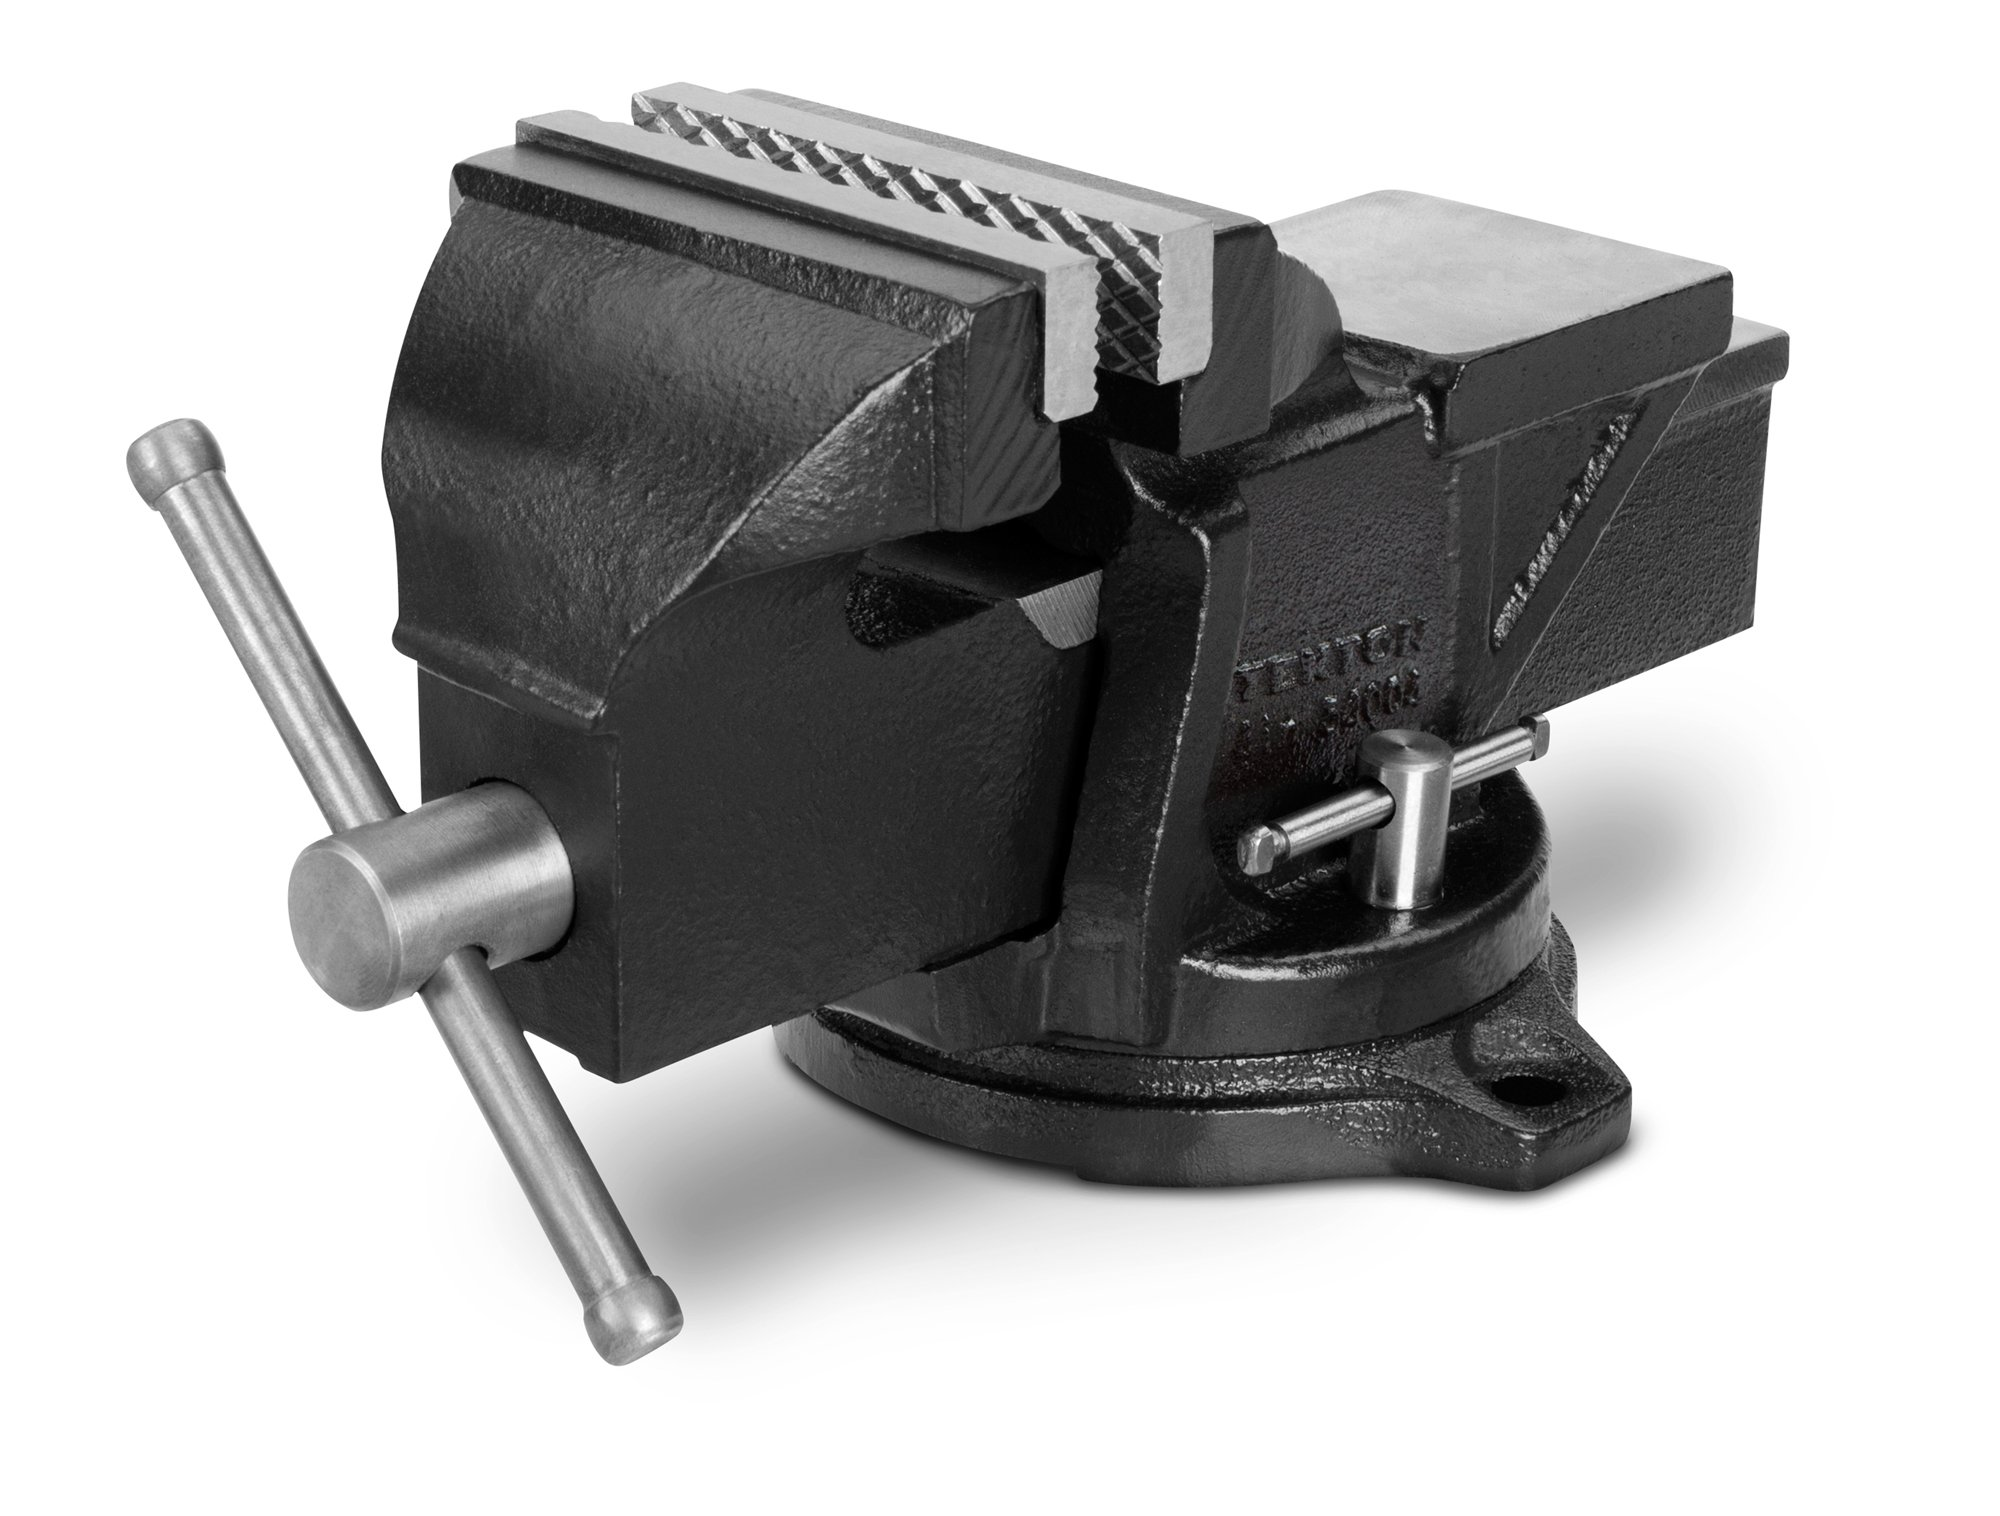 TEKTON 4-Inch Swivel Bench Vise | 54004 by TEKTON